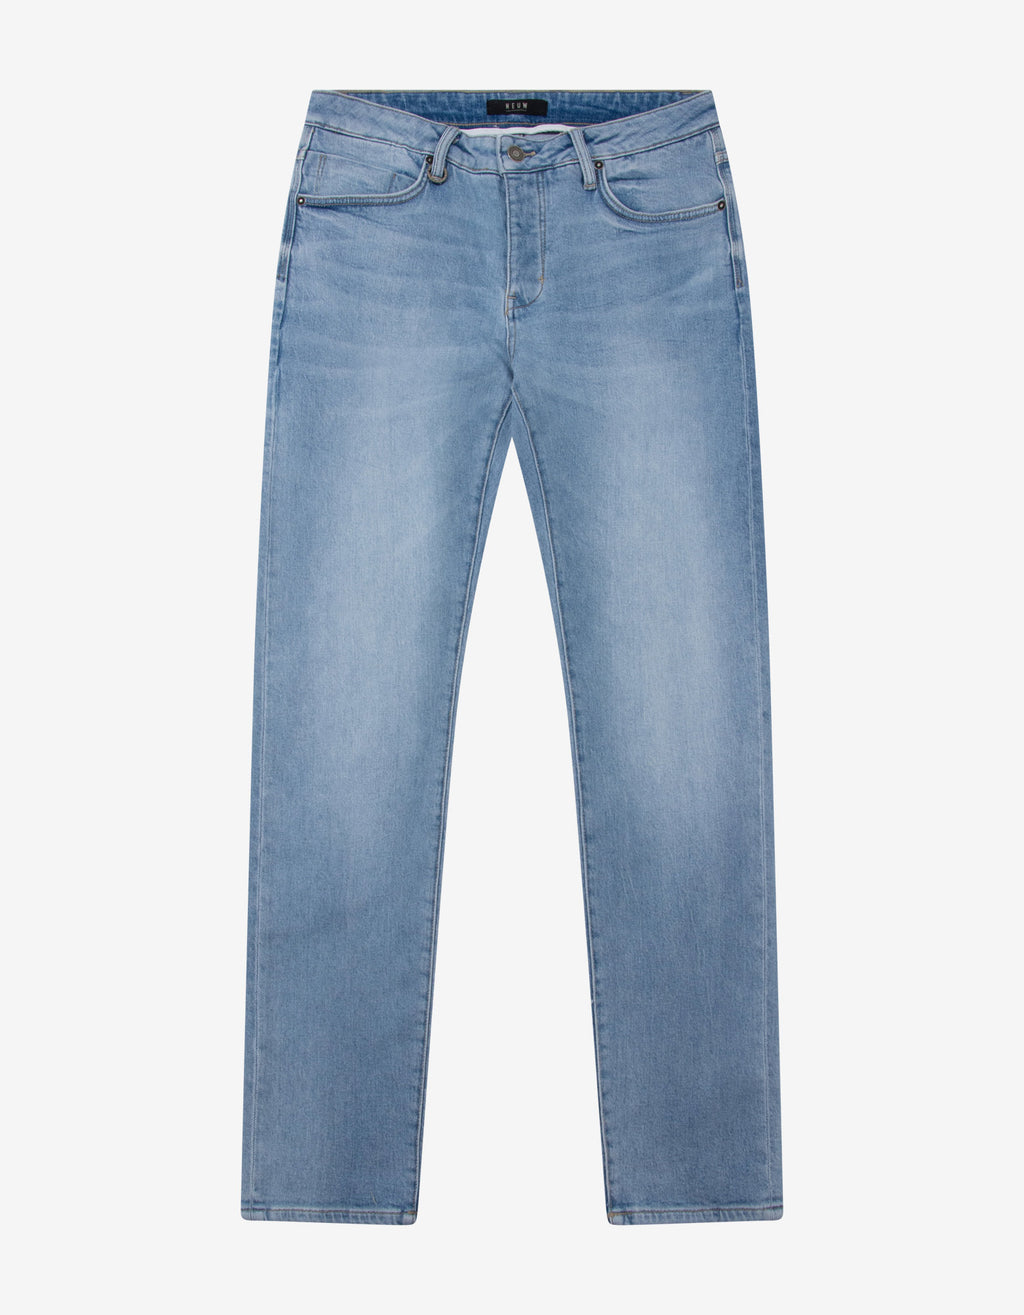 Iggy Skinny Zero Establishment Jeans